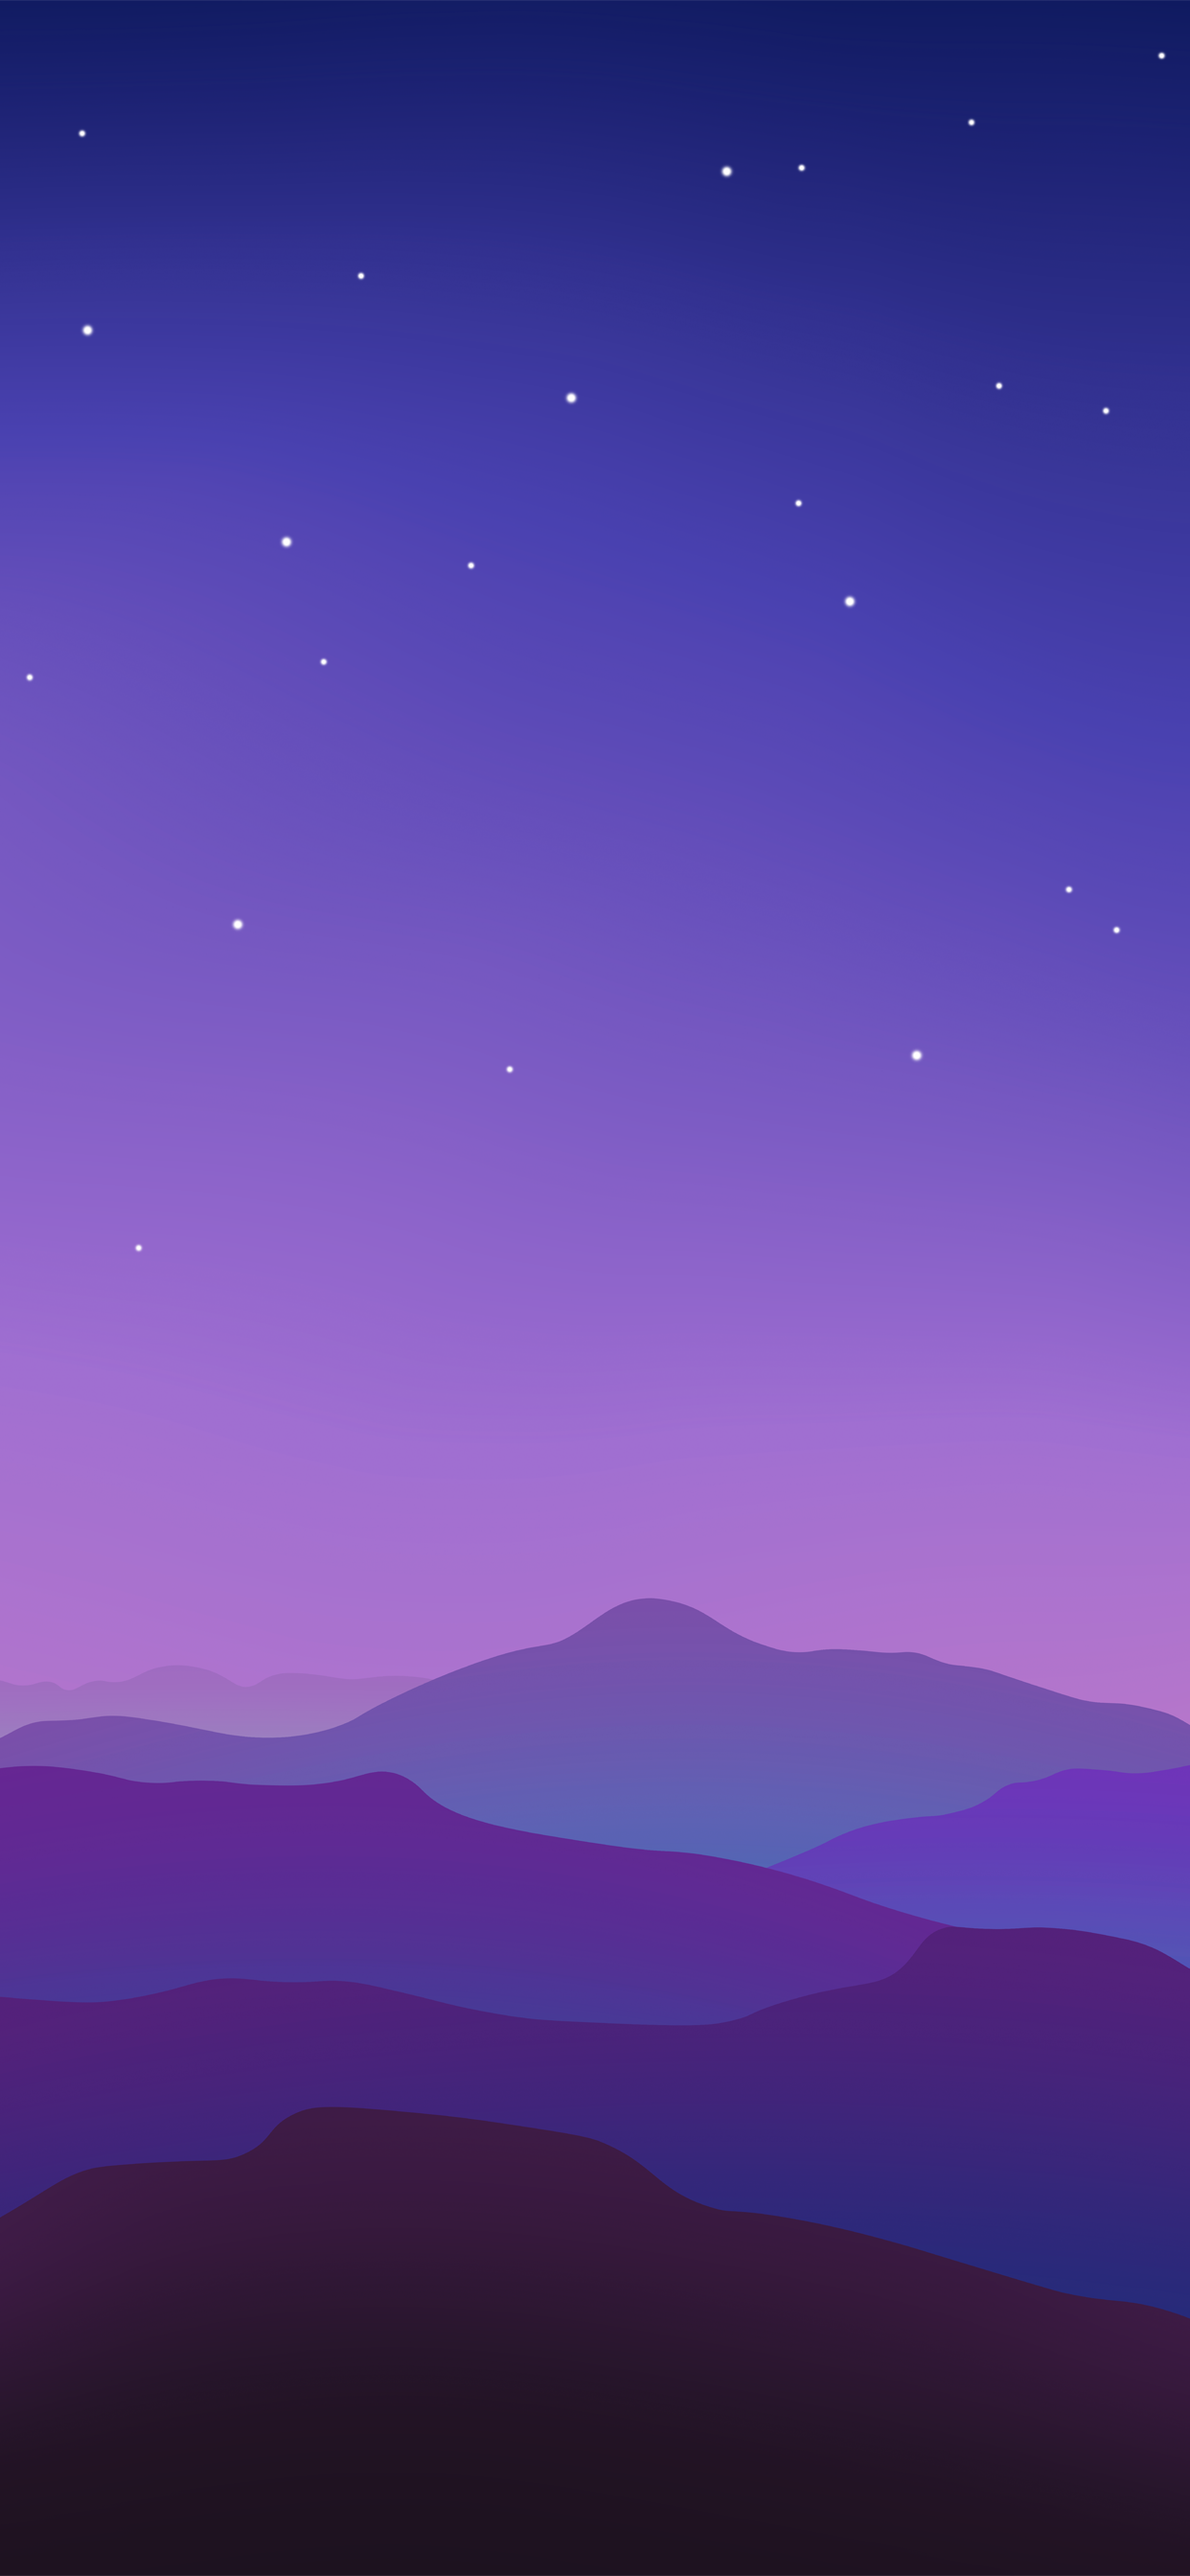 Colorful vector landscape wallpaper for iPhone in 2020